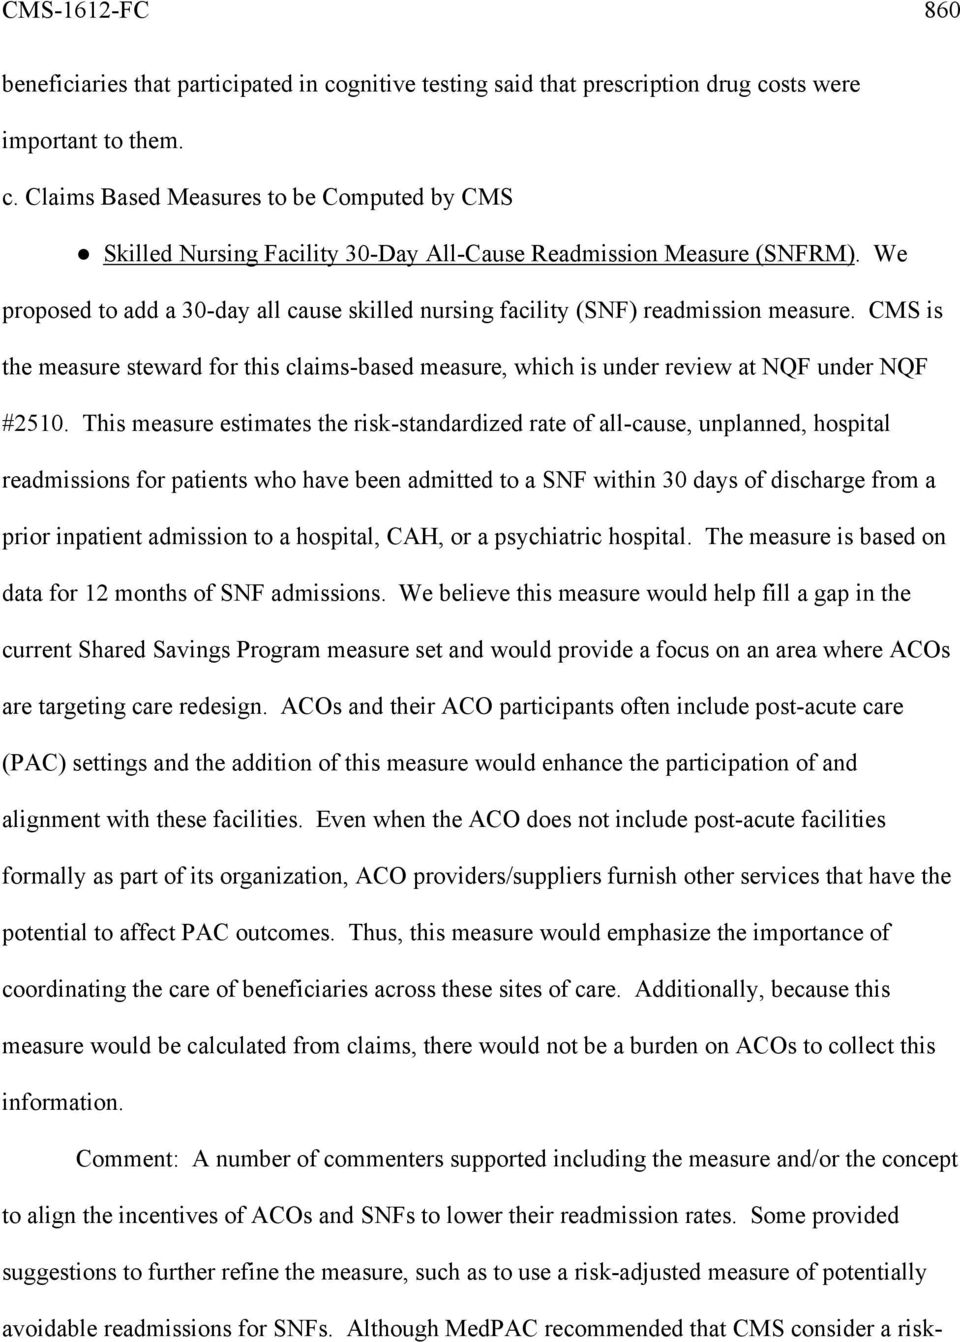 This measure estimates the risk-standardized rate of all-cause, unplanned, hospital readmissions for patients who have been admitted to a SNF within 30 days of discharge from a prior inpatient